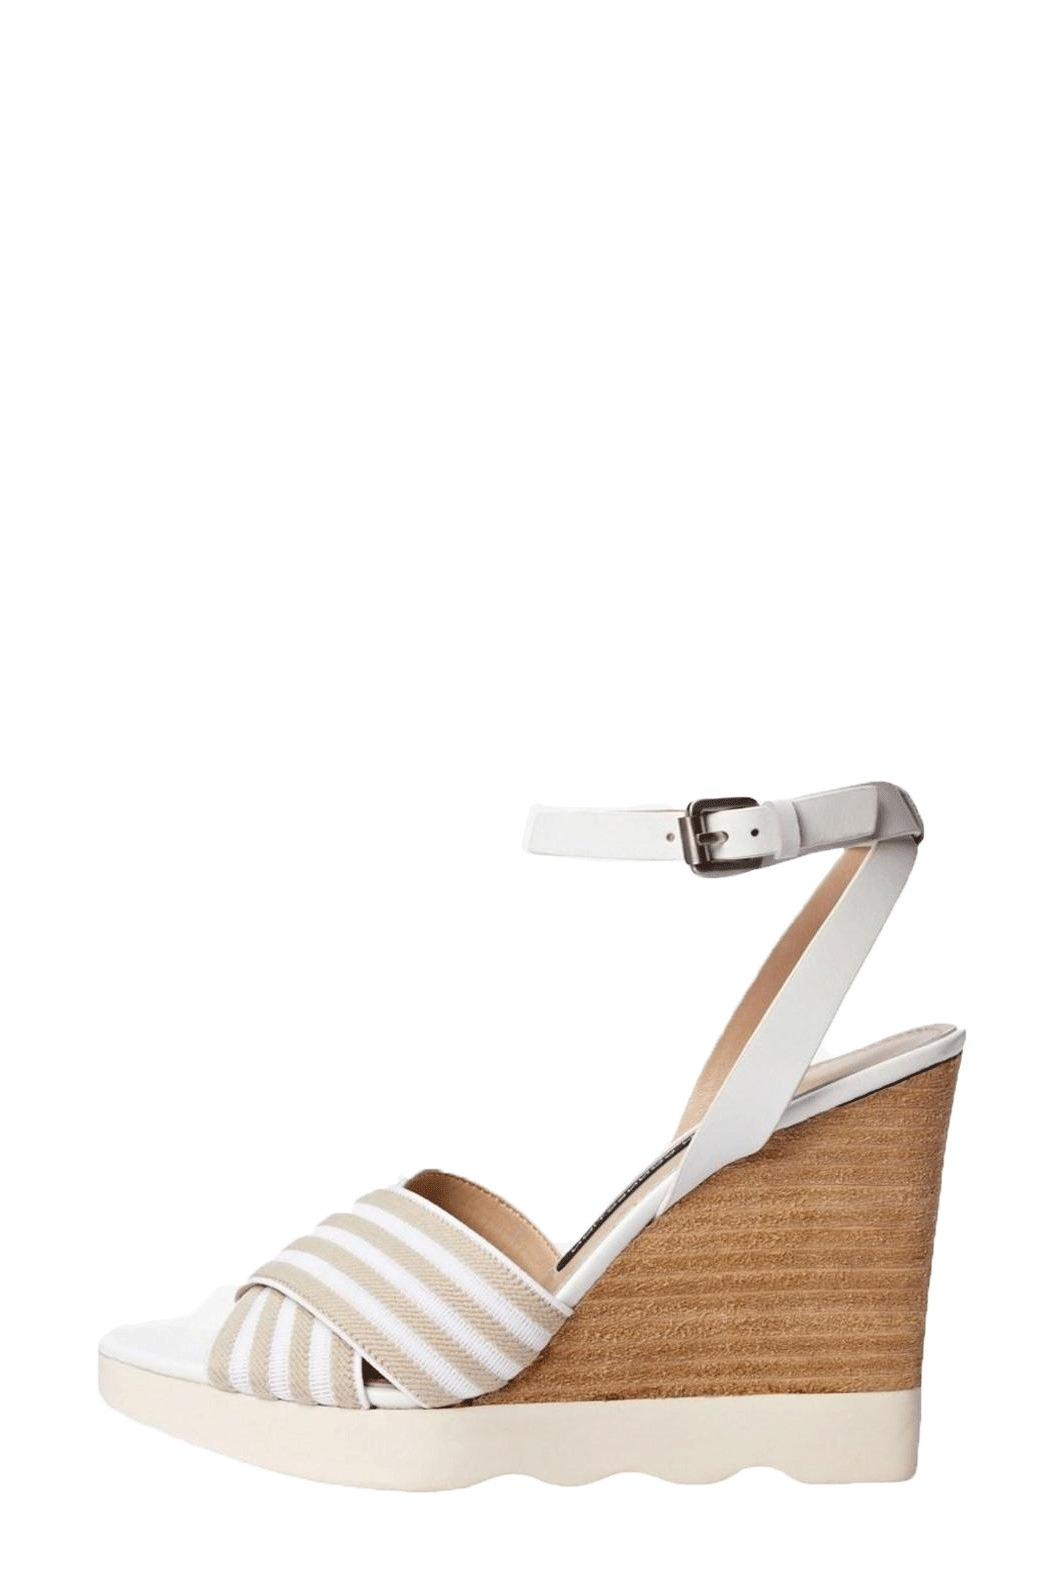 French Connection Seaside Wedge Sandals - Main Image